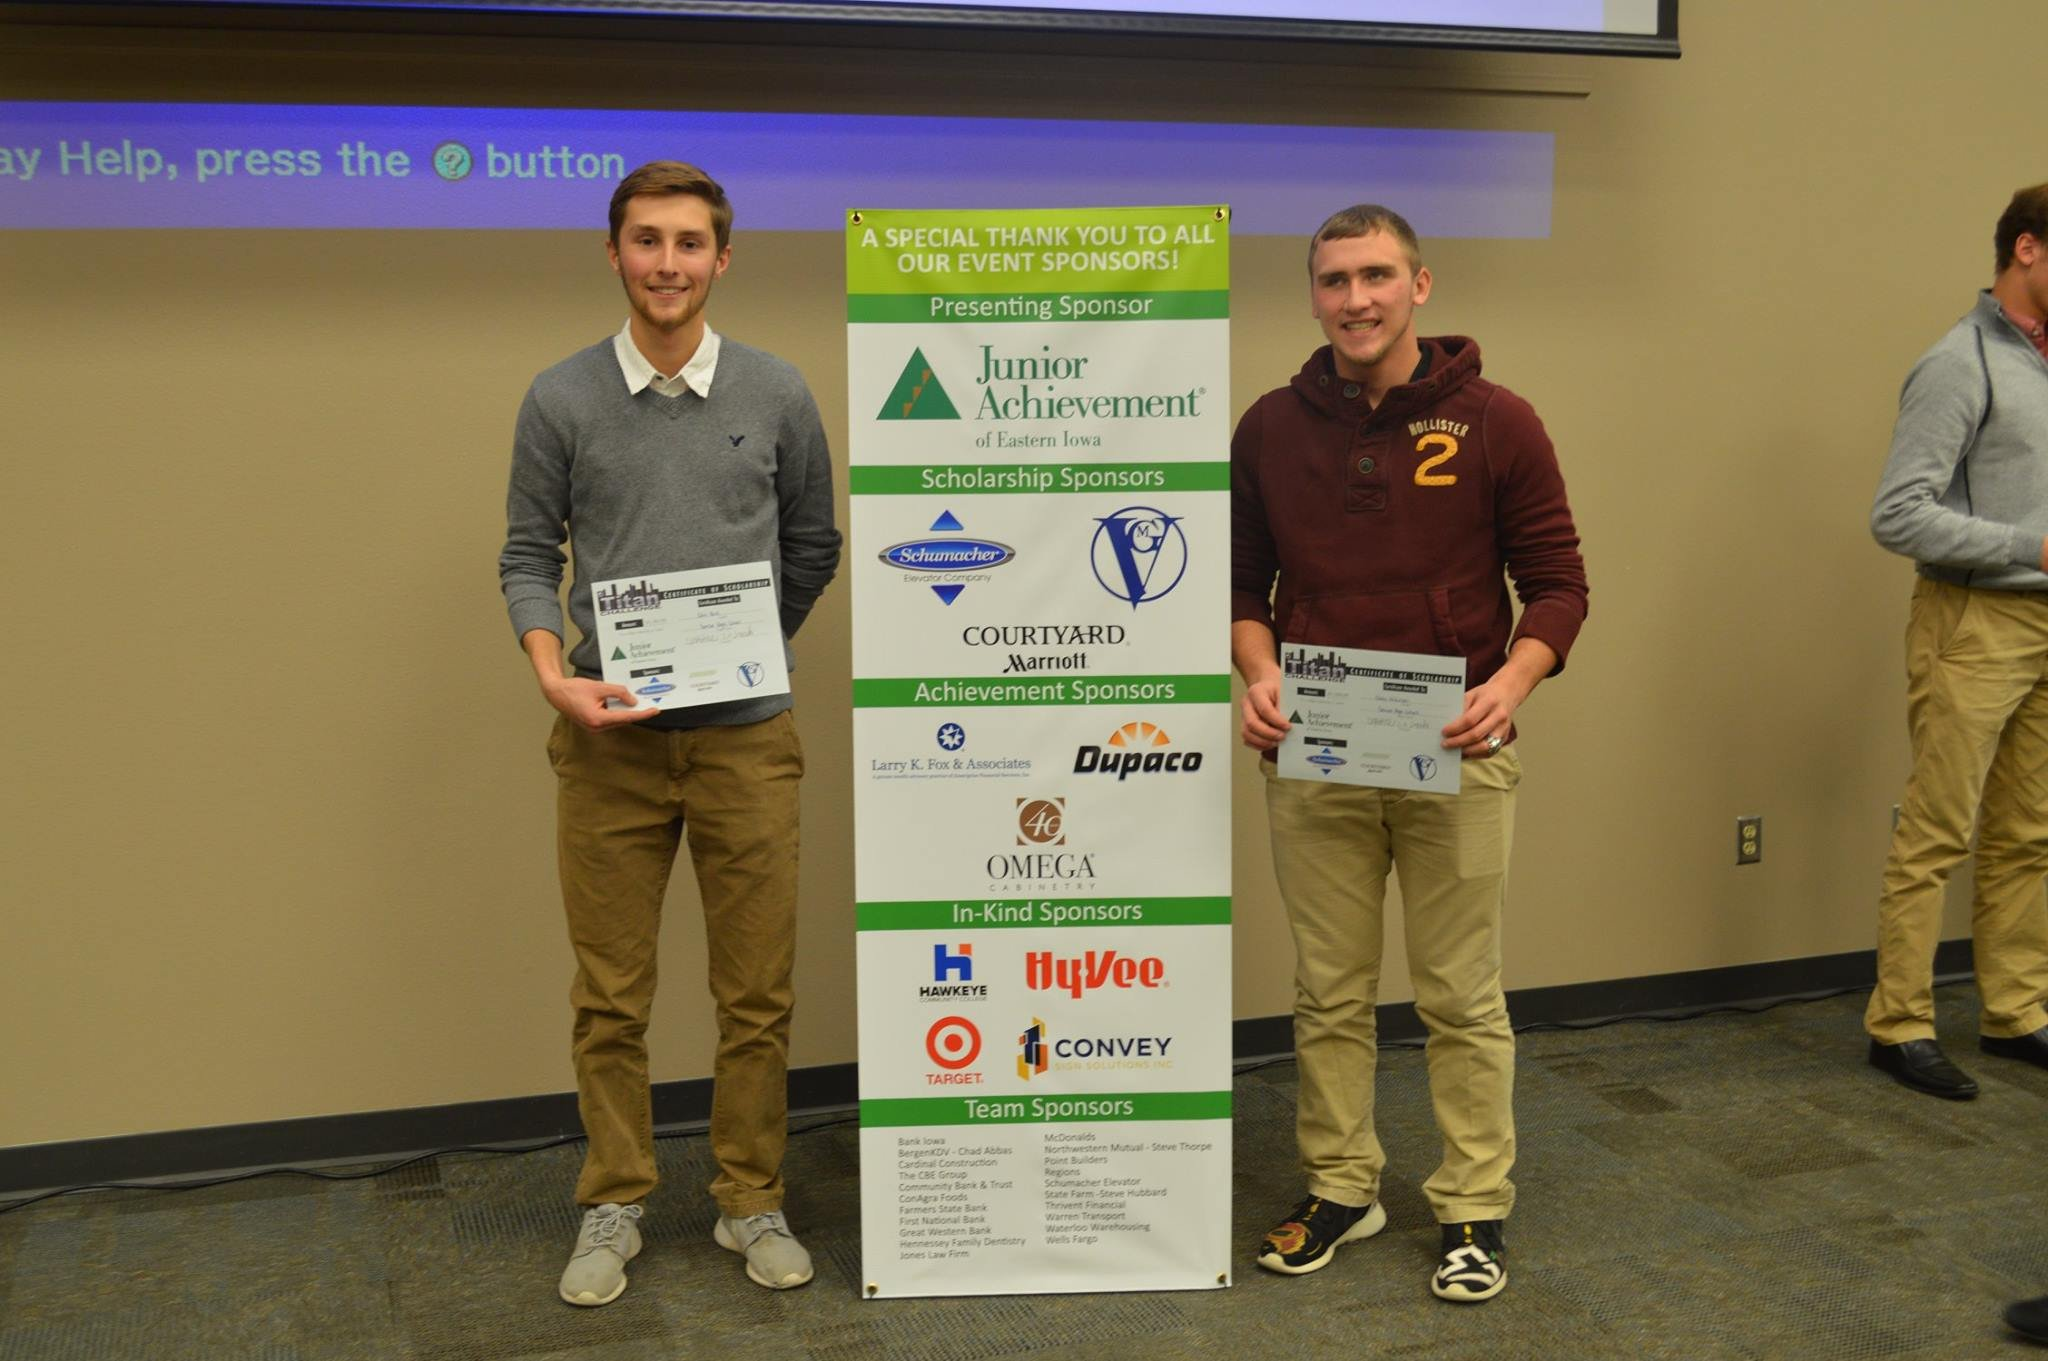 Pictured from left: 1st place winners, Colin Beck and Casey Anderson from Denver High School